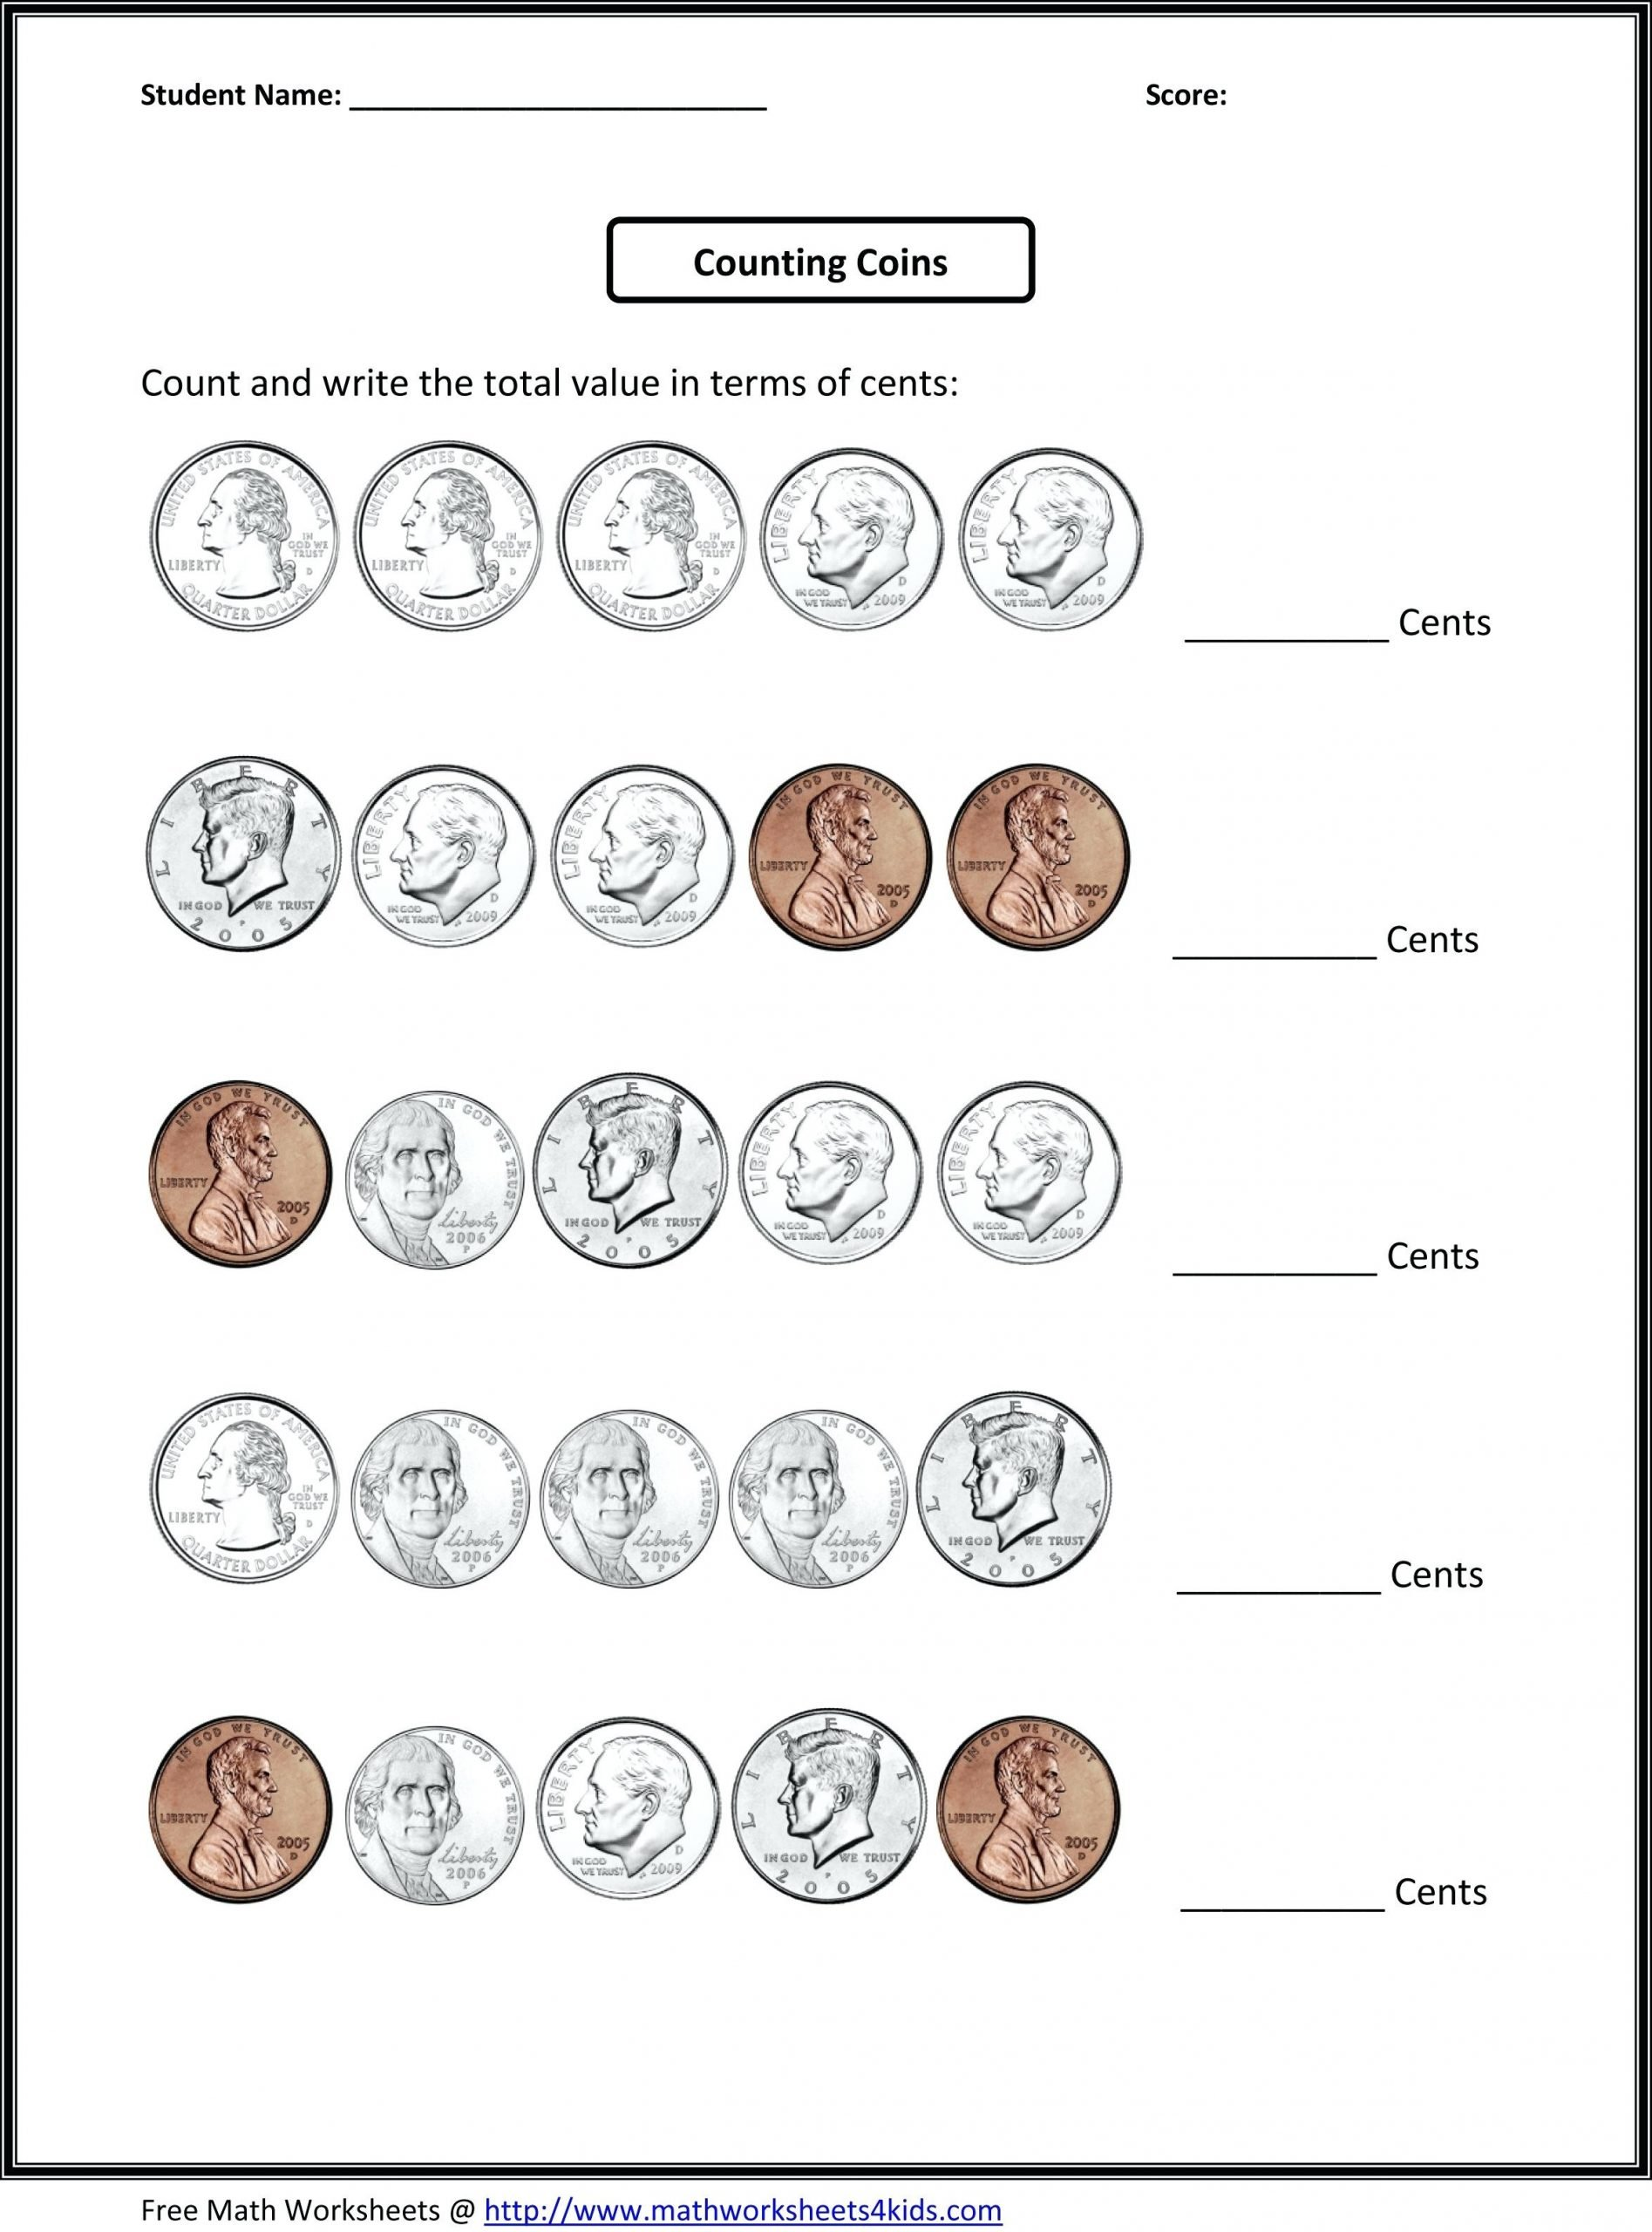 Free Counting Coins Worksheets 66 Fun Money Worksheets to Print